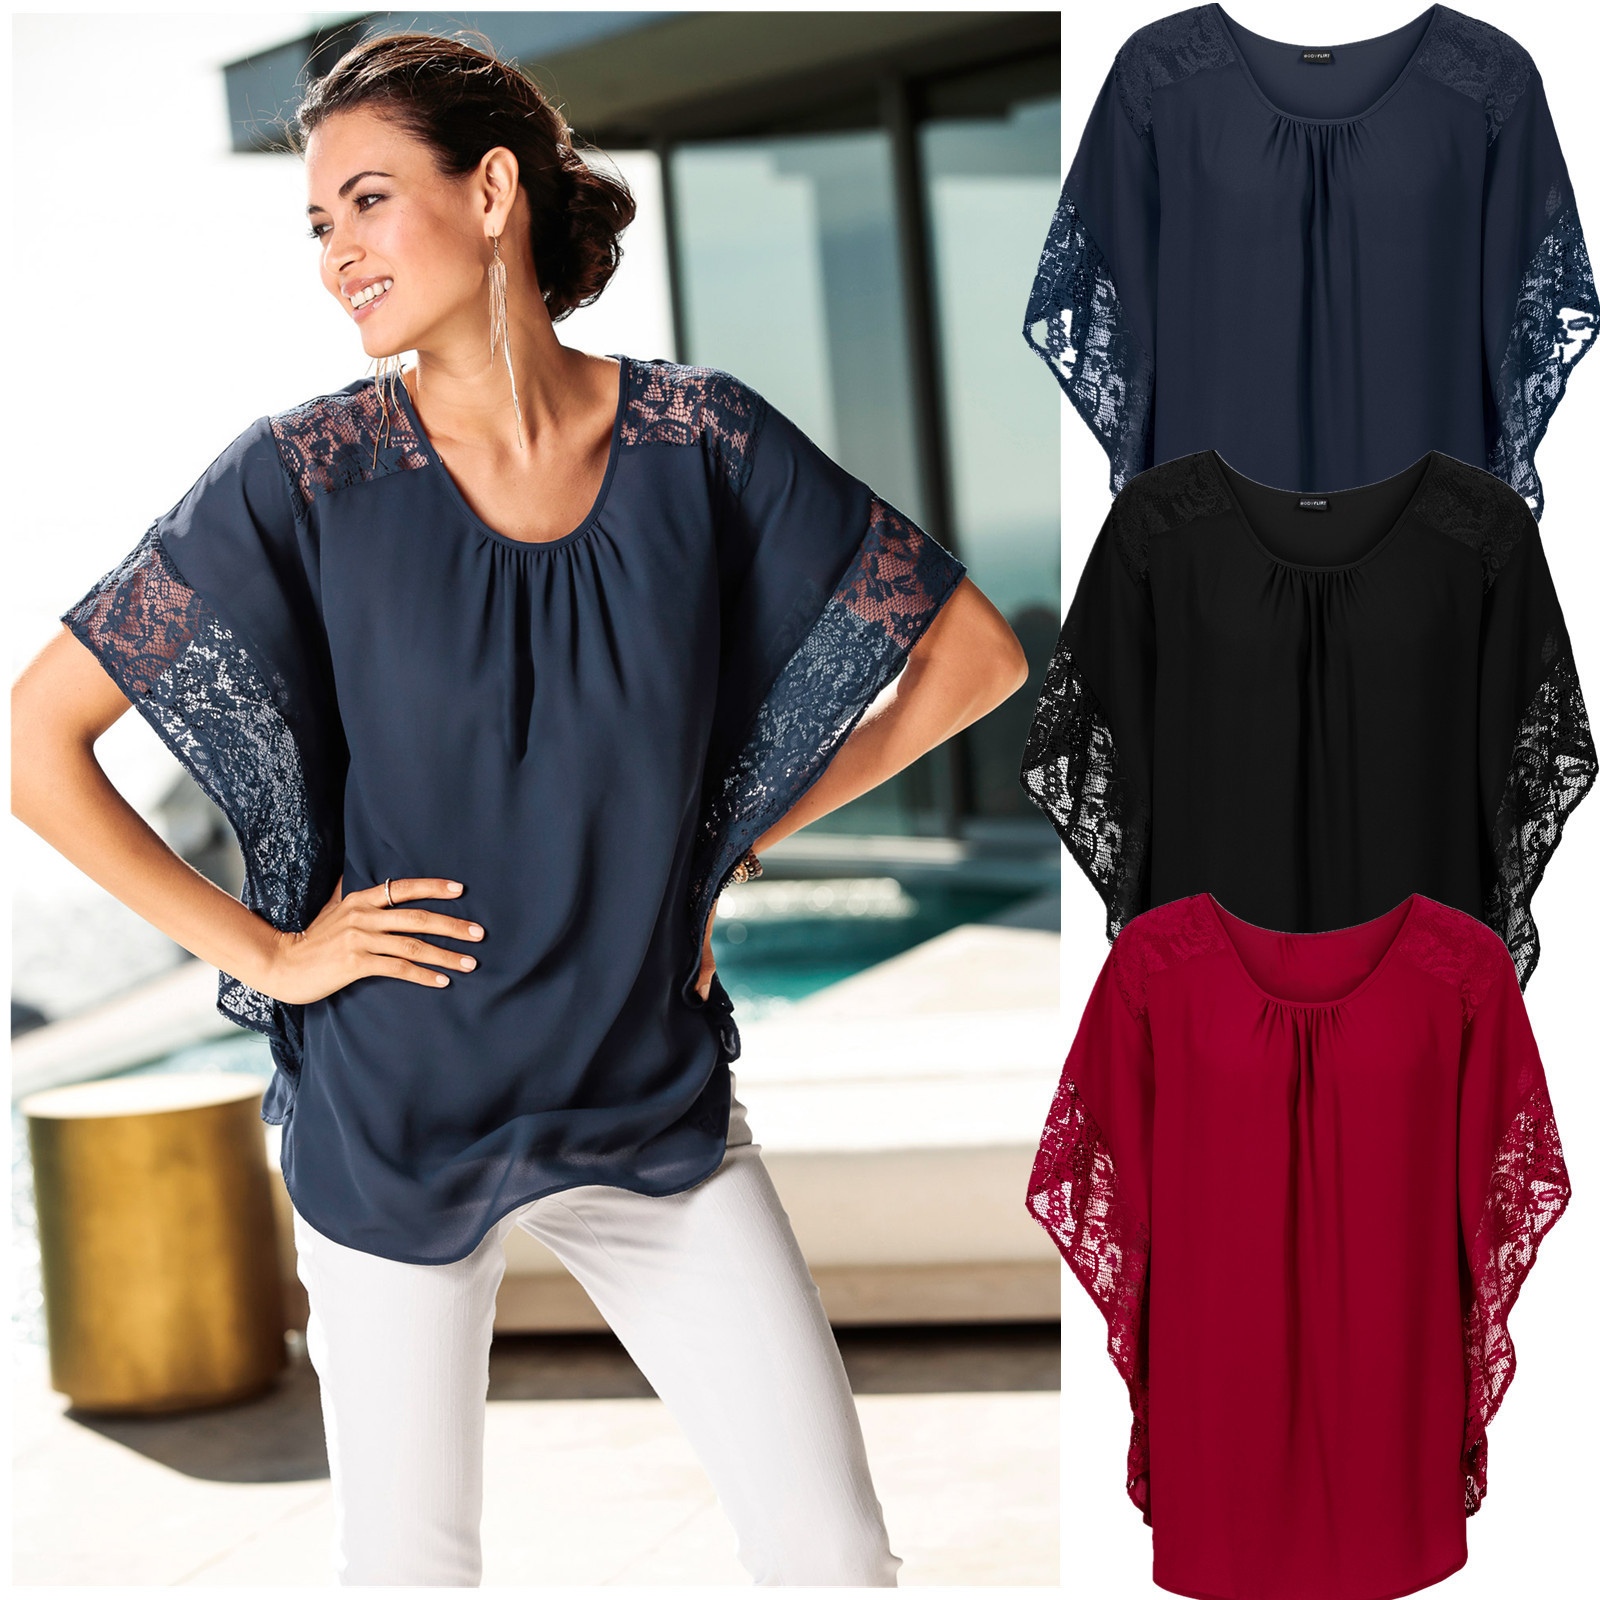 Compare Prices on Bat Blouses- Online Shopping/Buy Low Price Bat ...